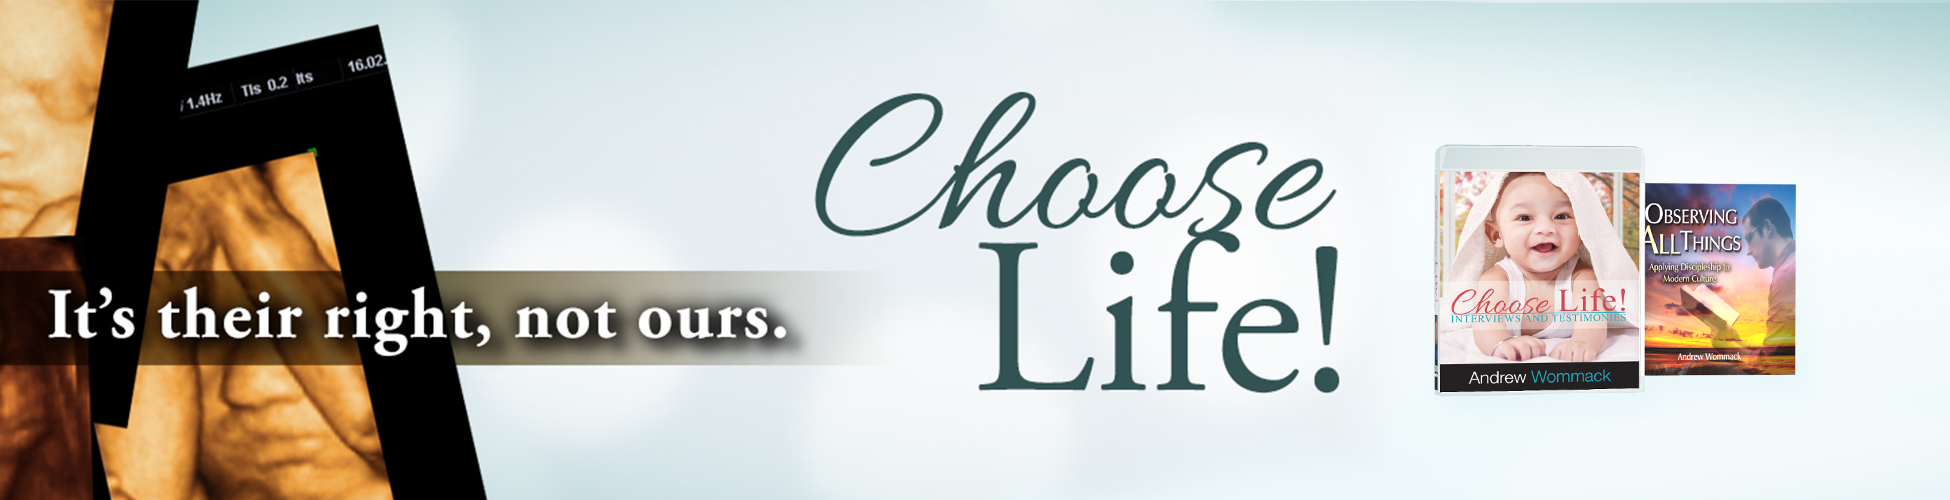 Choose_Life_Website_Banner_1950x500_Formatted_2021-01-11